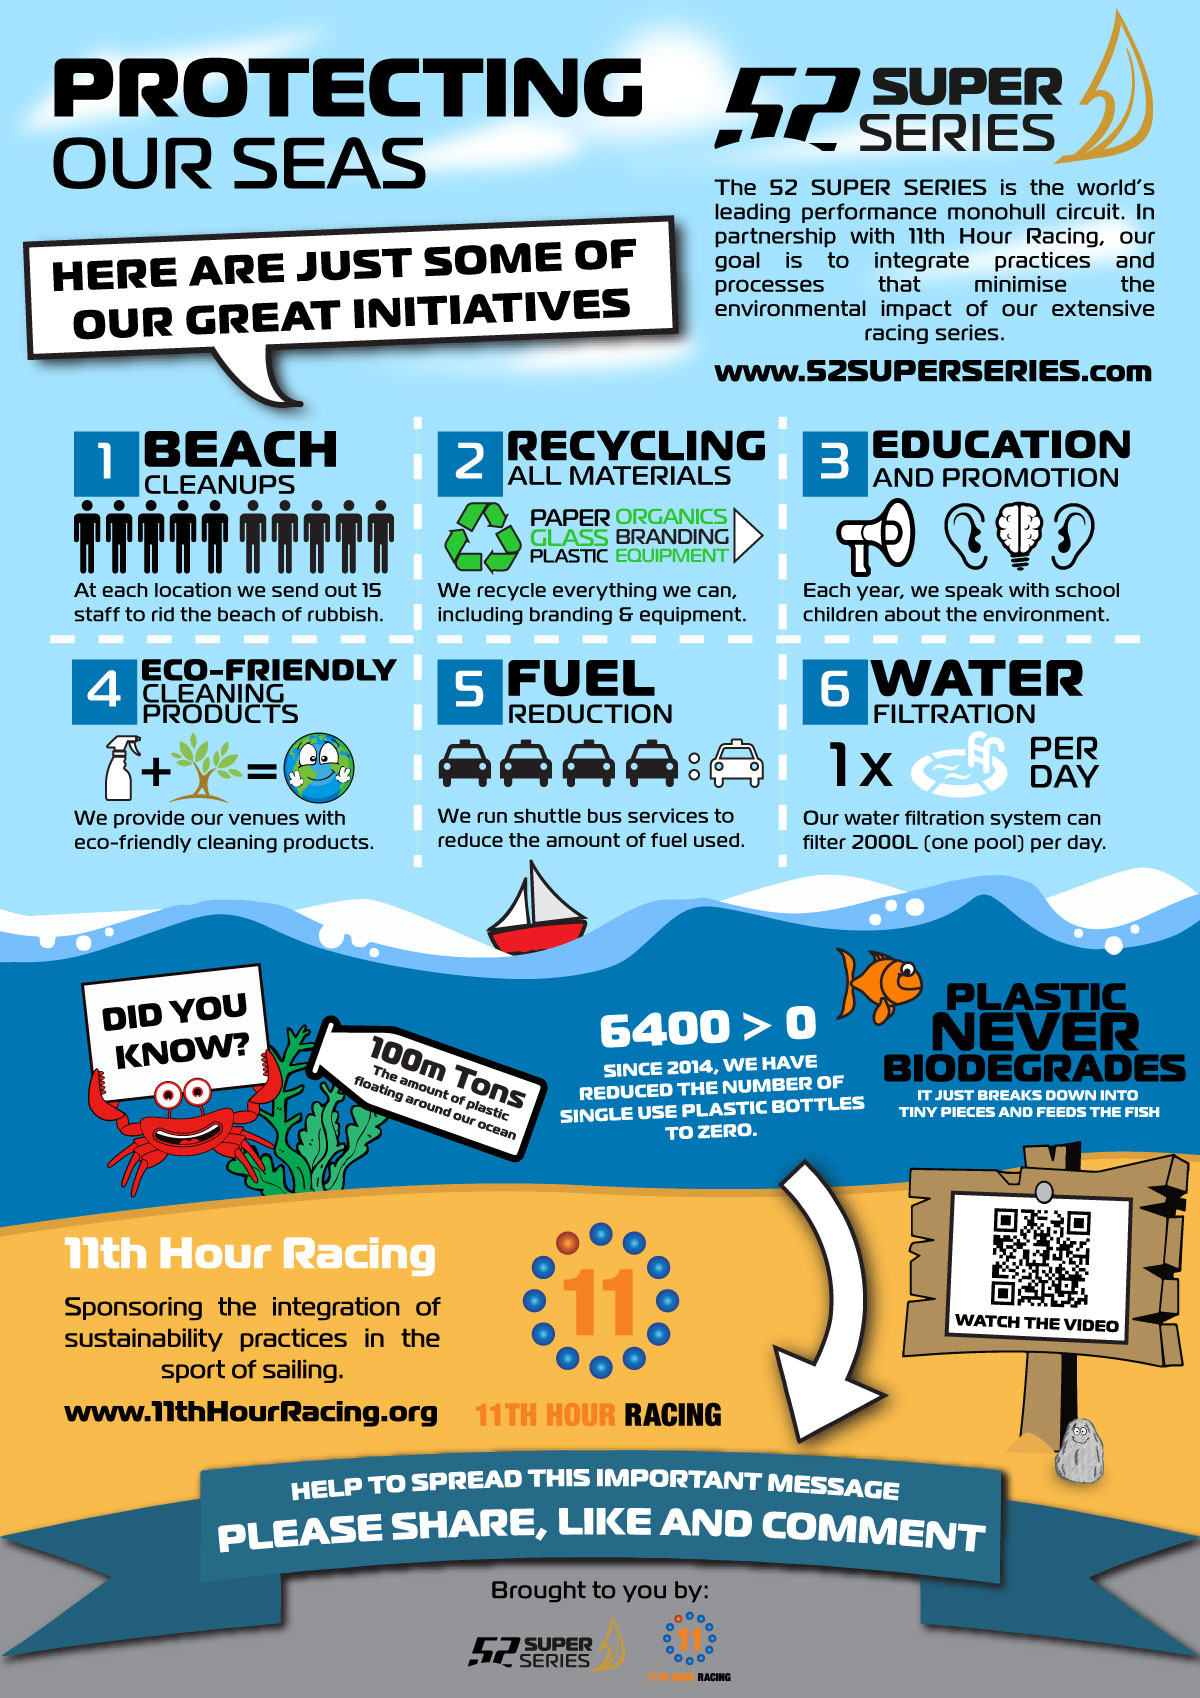 2.-52-SUPER-SERIES-PROTECTING-OUR-SEAS-INFOGRAPHIC